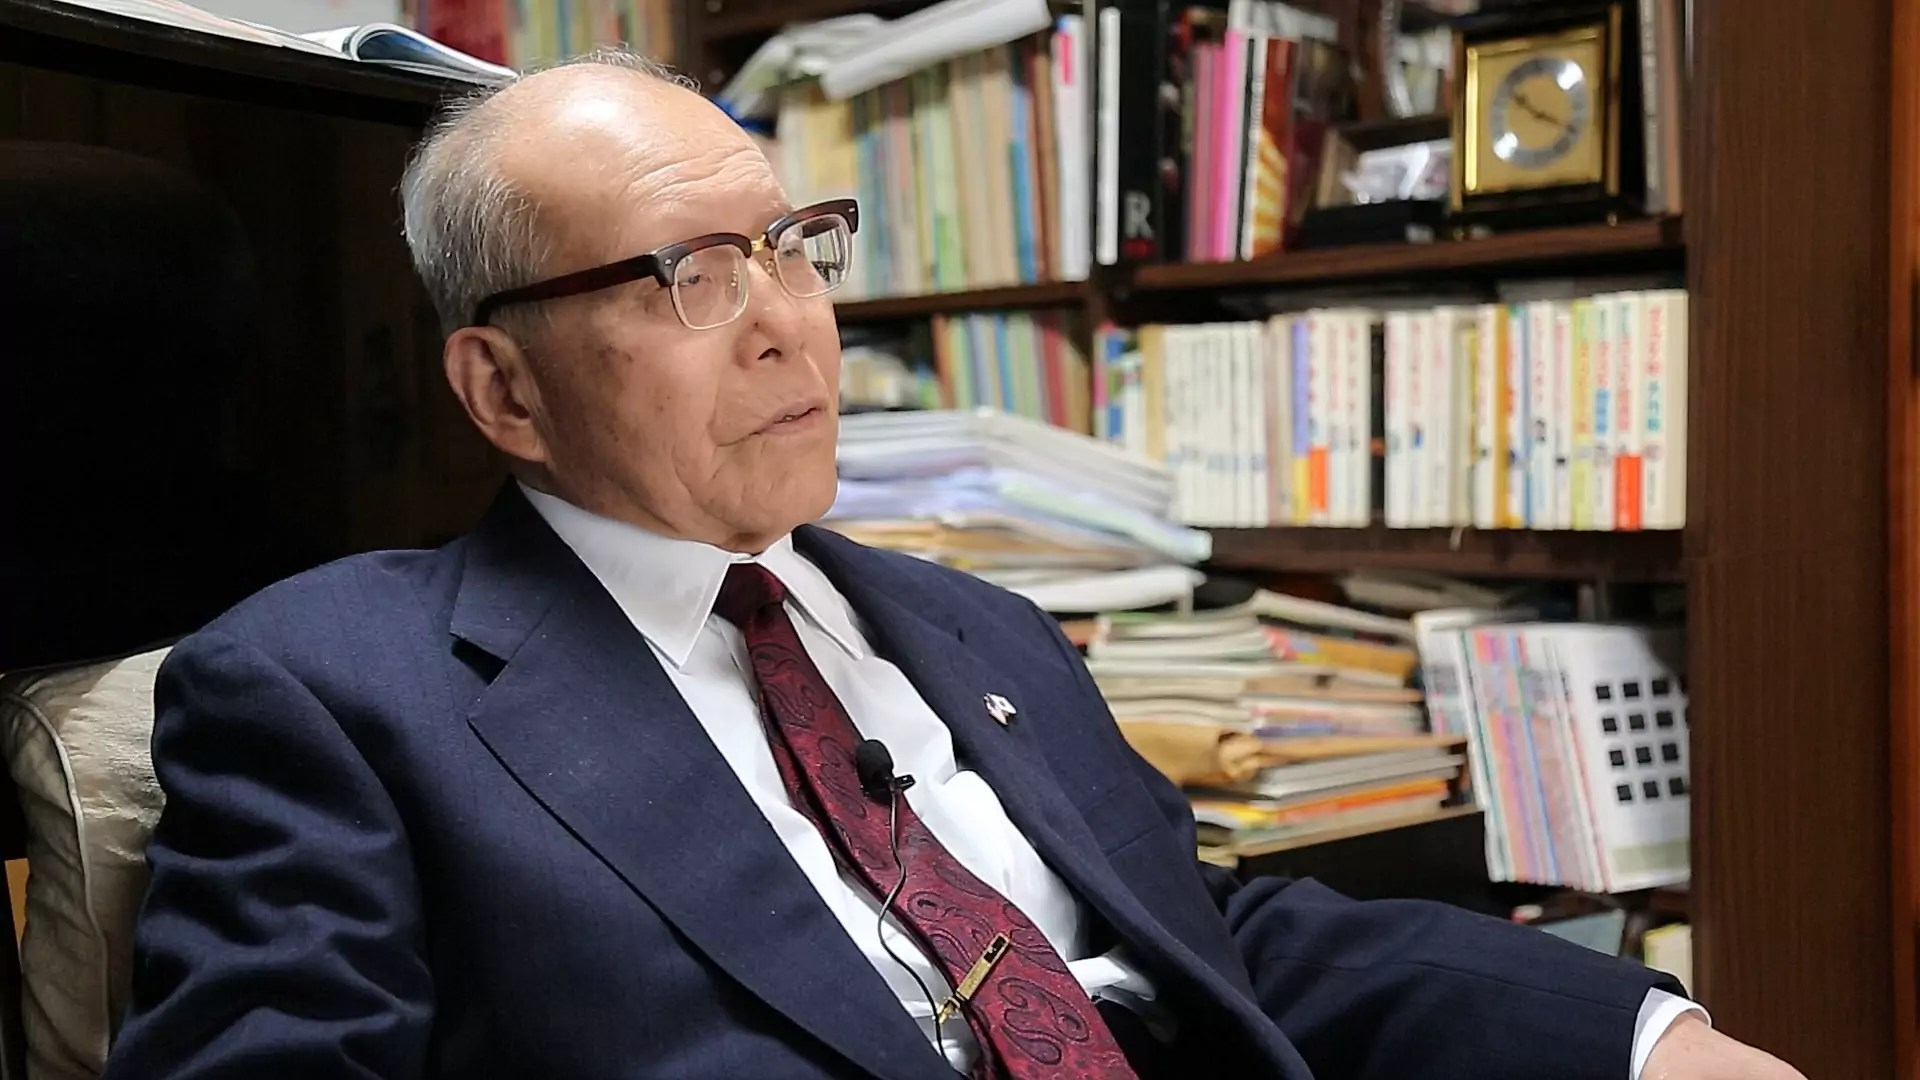 A man wearing a suit and glasses sits in a library